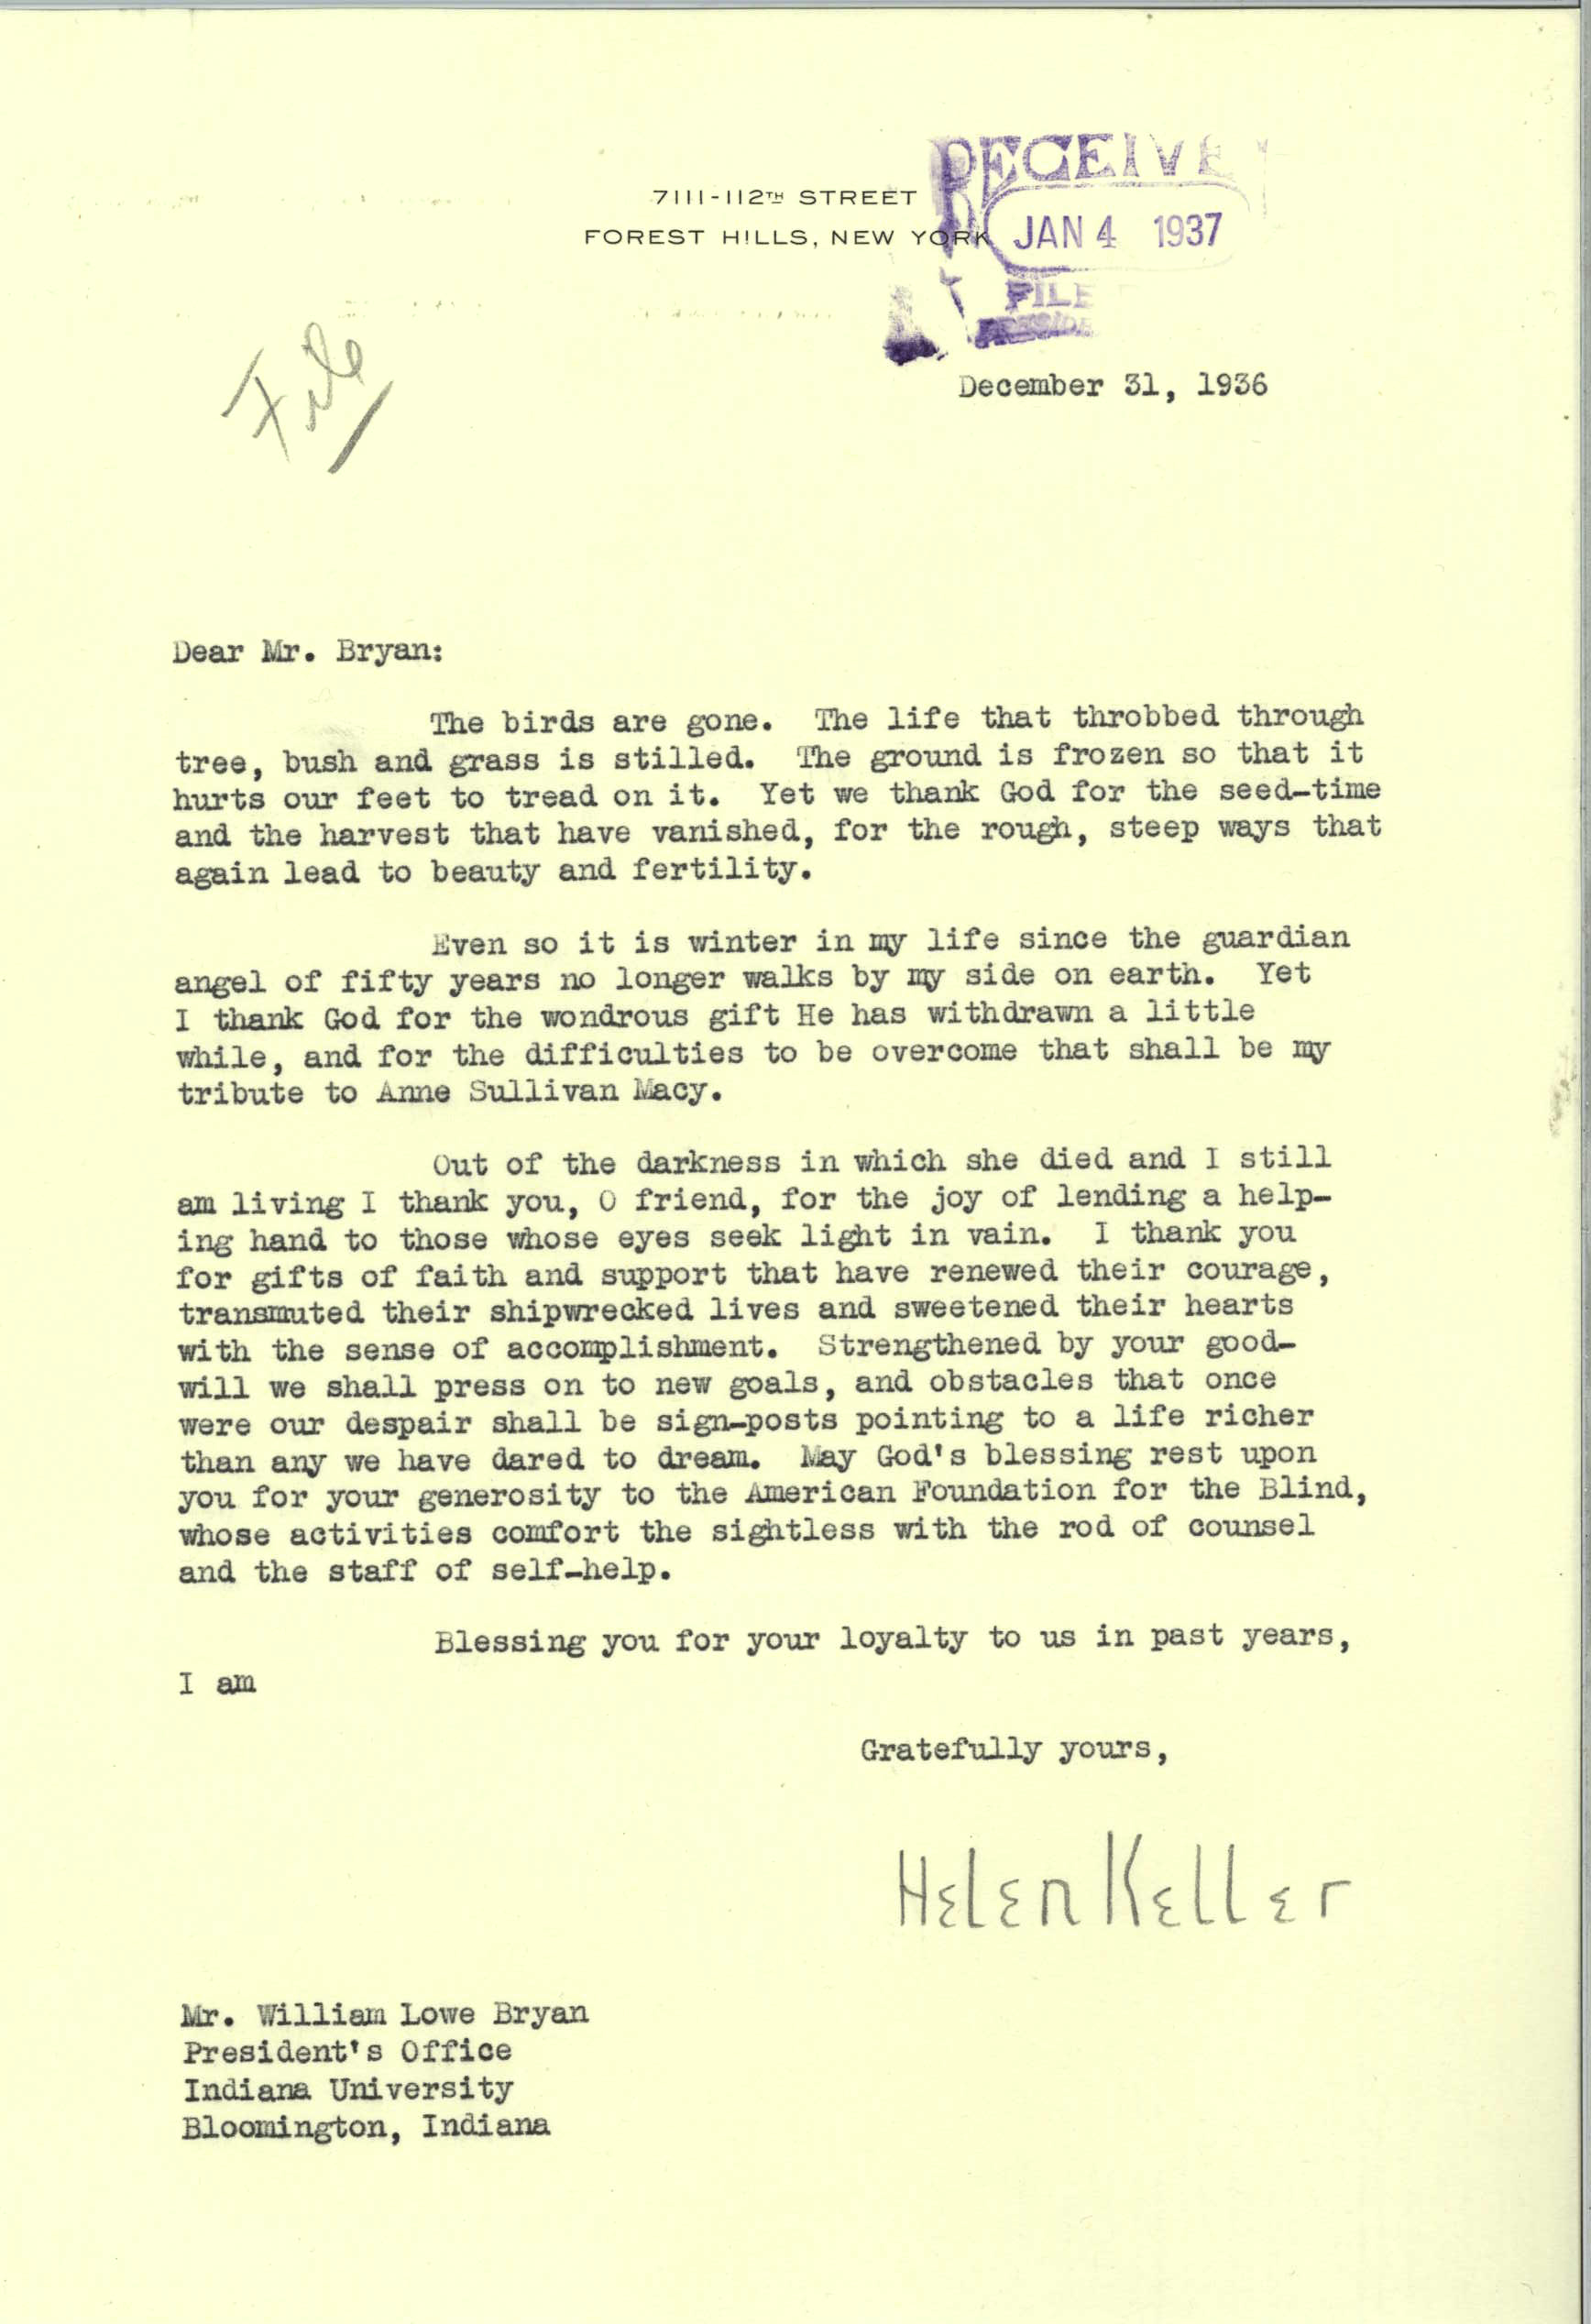 Letter from Hellen Keller to IU President, dated 1936